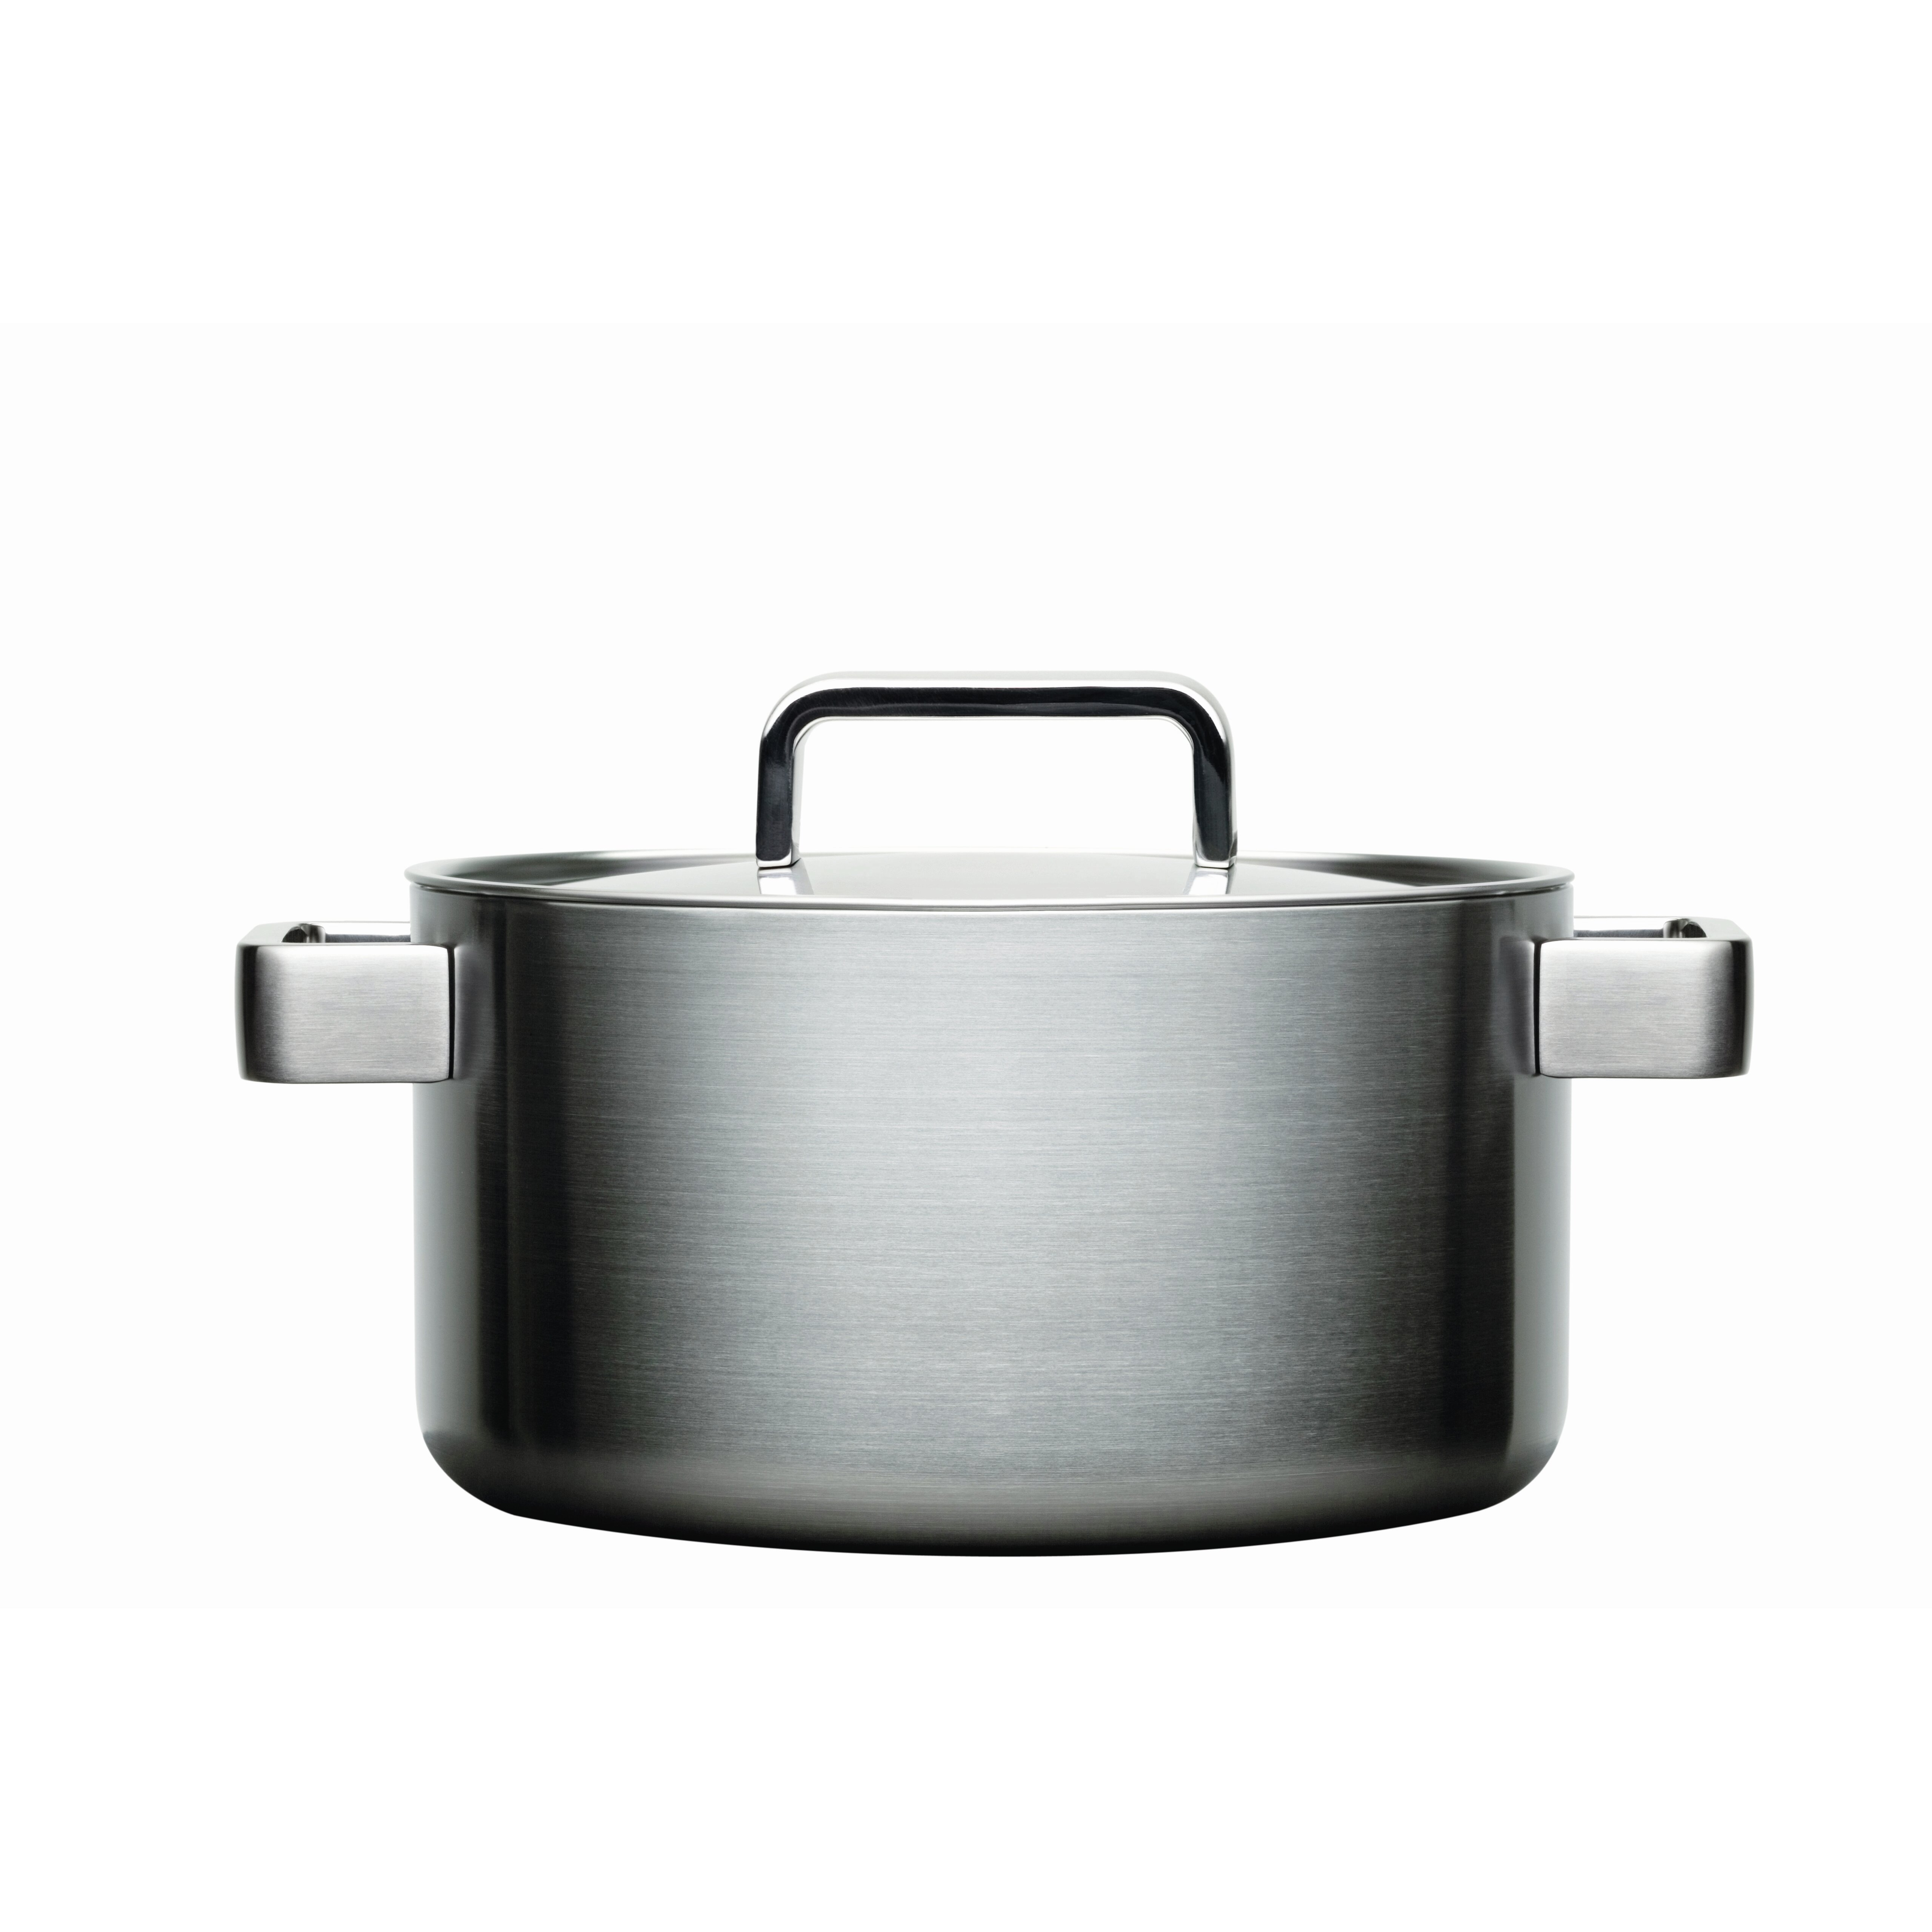 Tools Round Stainless Steel 4 Qt. Casserole With Lid | AllModern - iittala Tools Round Stainless Steel 4 Qt. Casserole With Lid